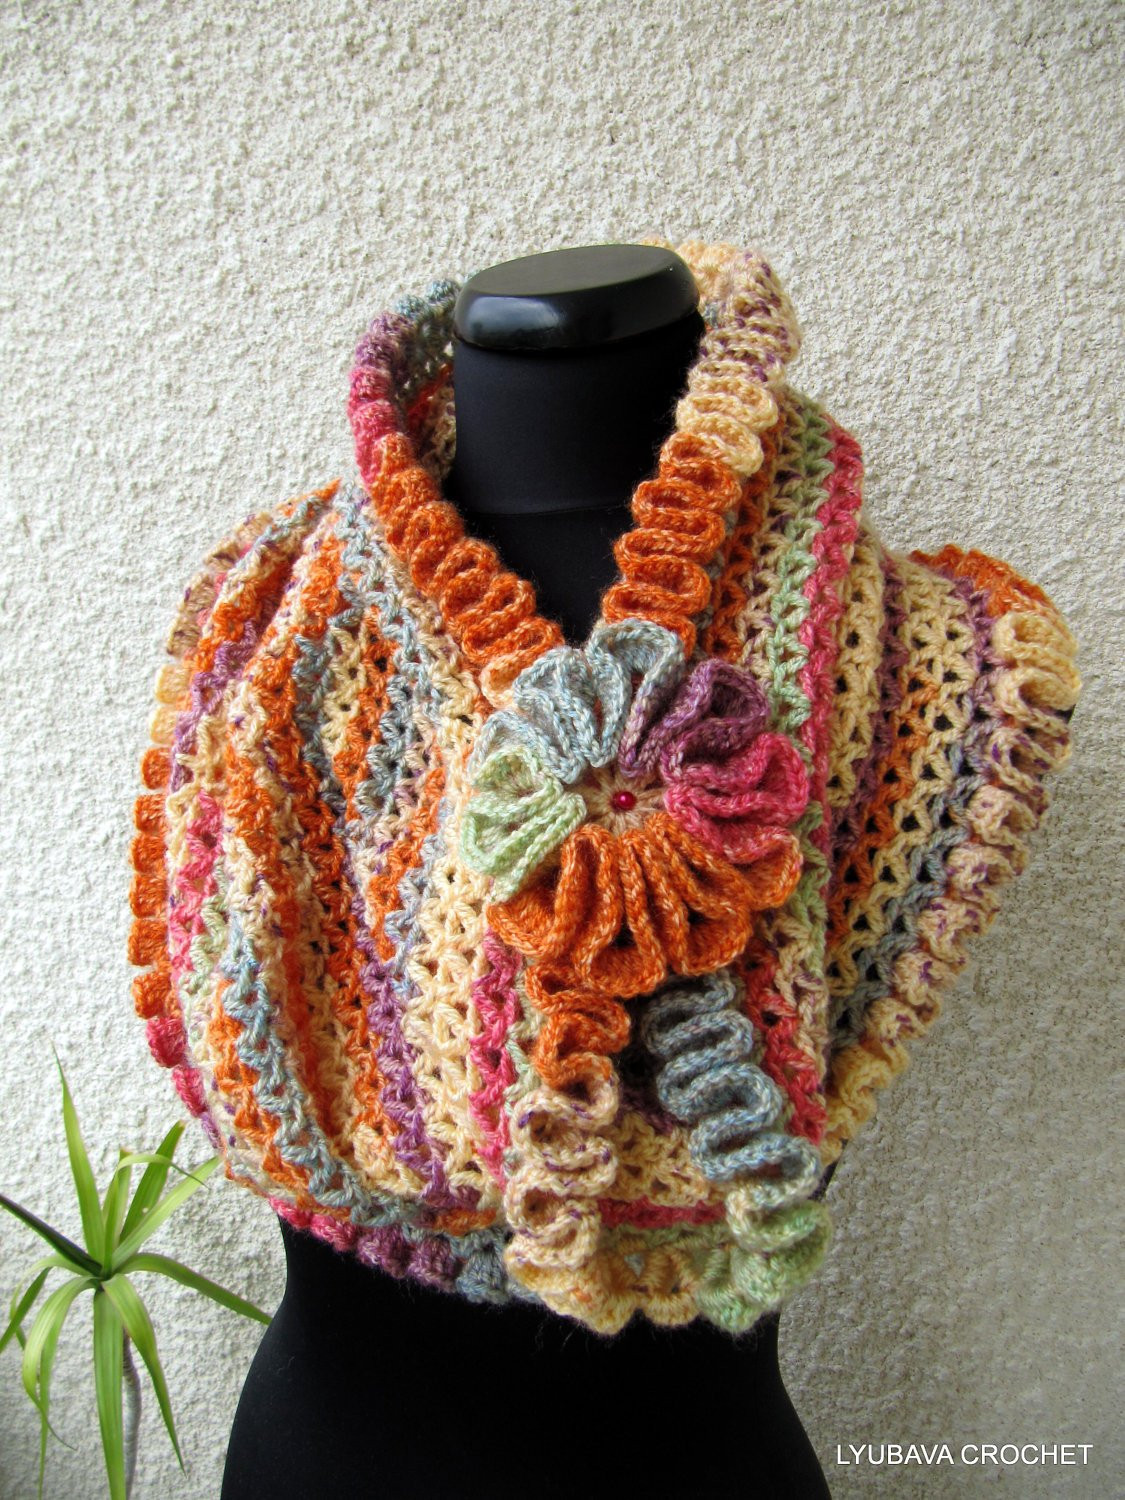 Elegant Crochet Cowl Scarf Pattern Autumn Colors Scarf Diy Scarf Crochet Ruffle Scarf Of Inspirational Firehawke Hooks and Needles Free Pattern Ruffle Scarf Crochet Ruffle Scarf